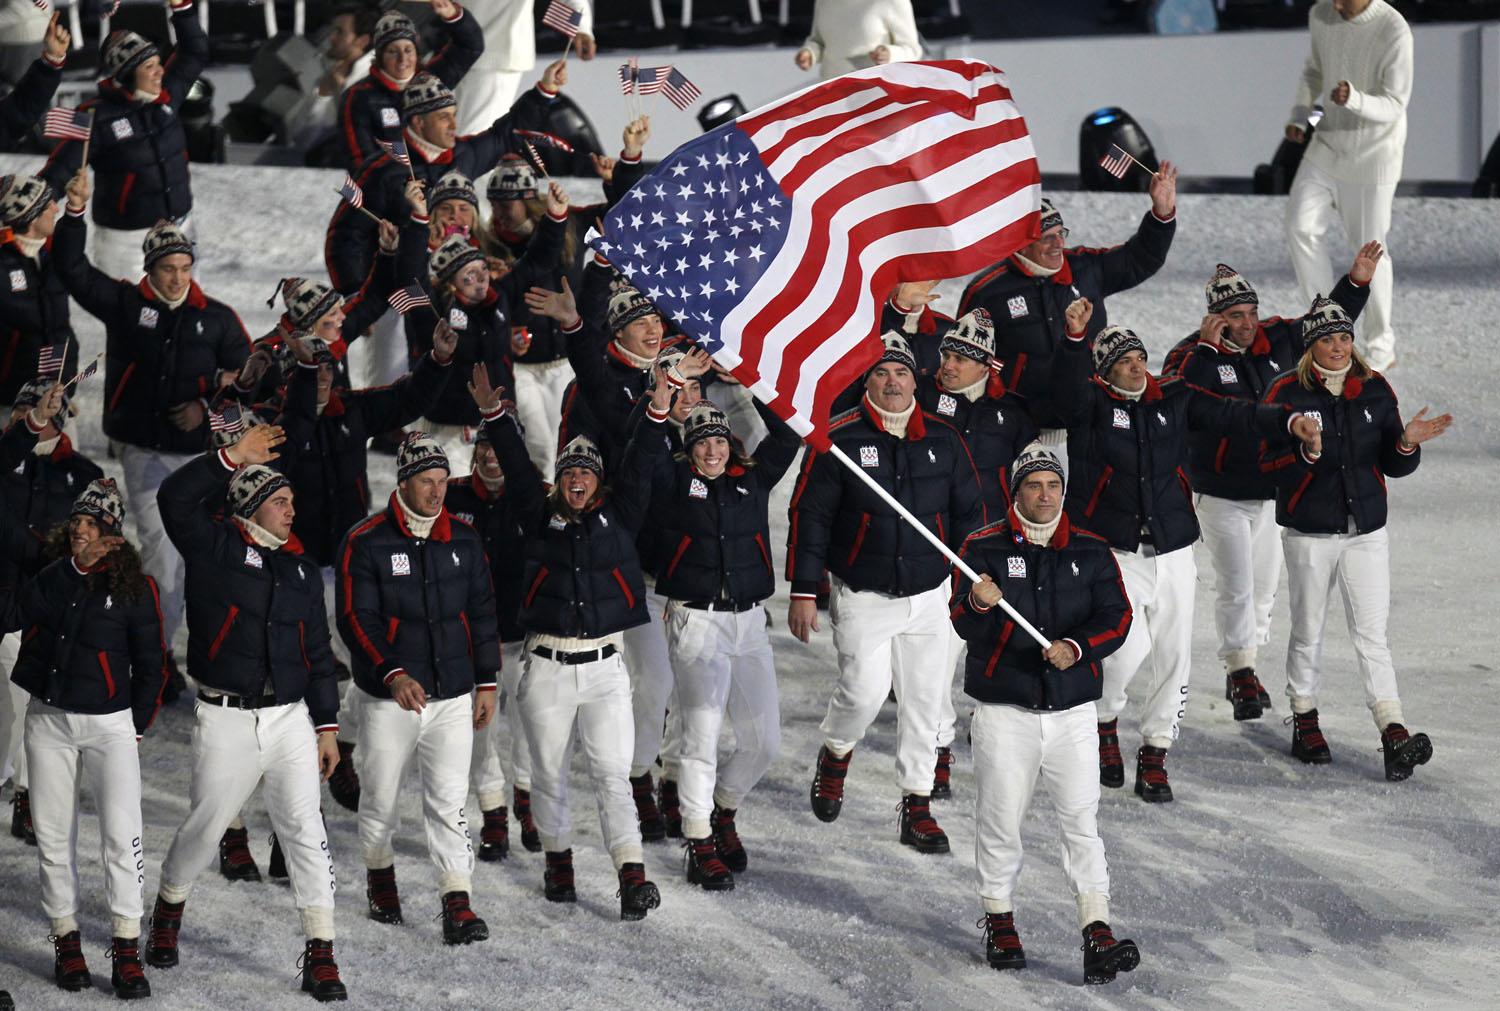 Luger Mark Grimmette bears the American flag and leads his delegation during the opening ceremony of the Vancouver  Winter Olympics, Feb. 12, 2010.